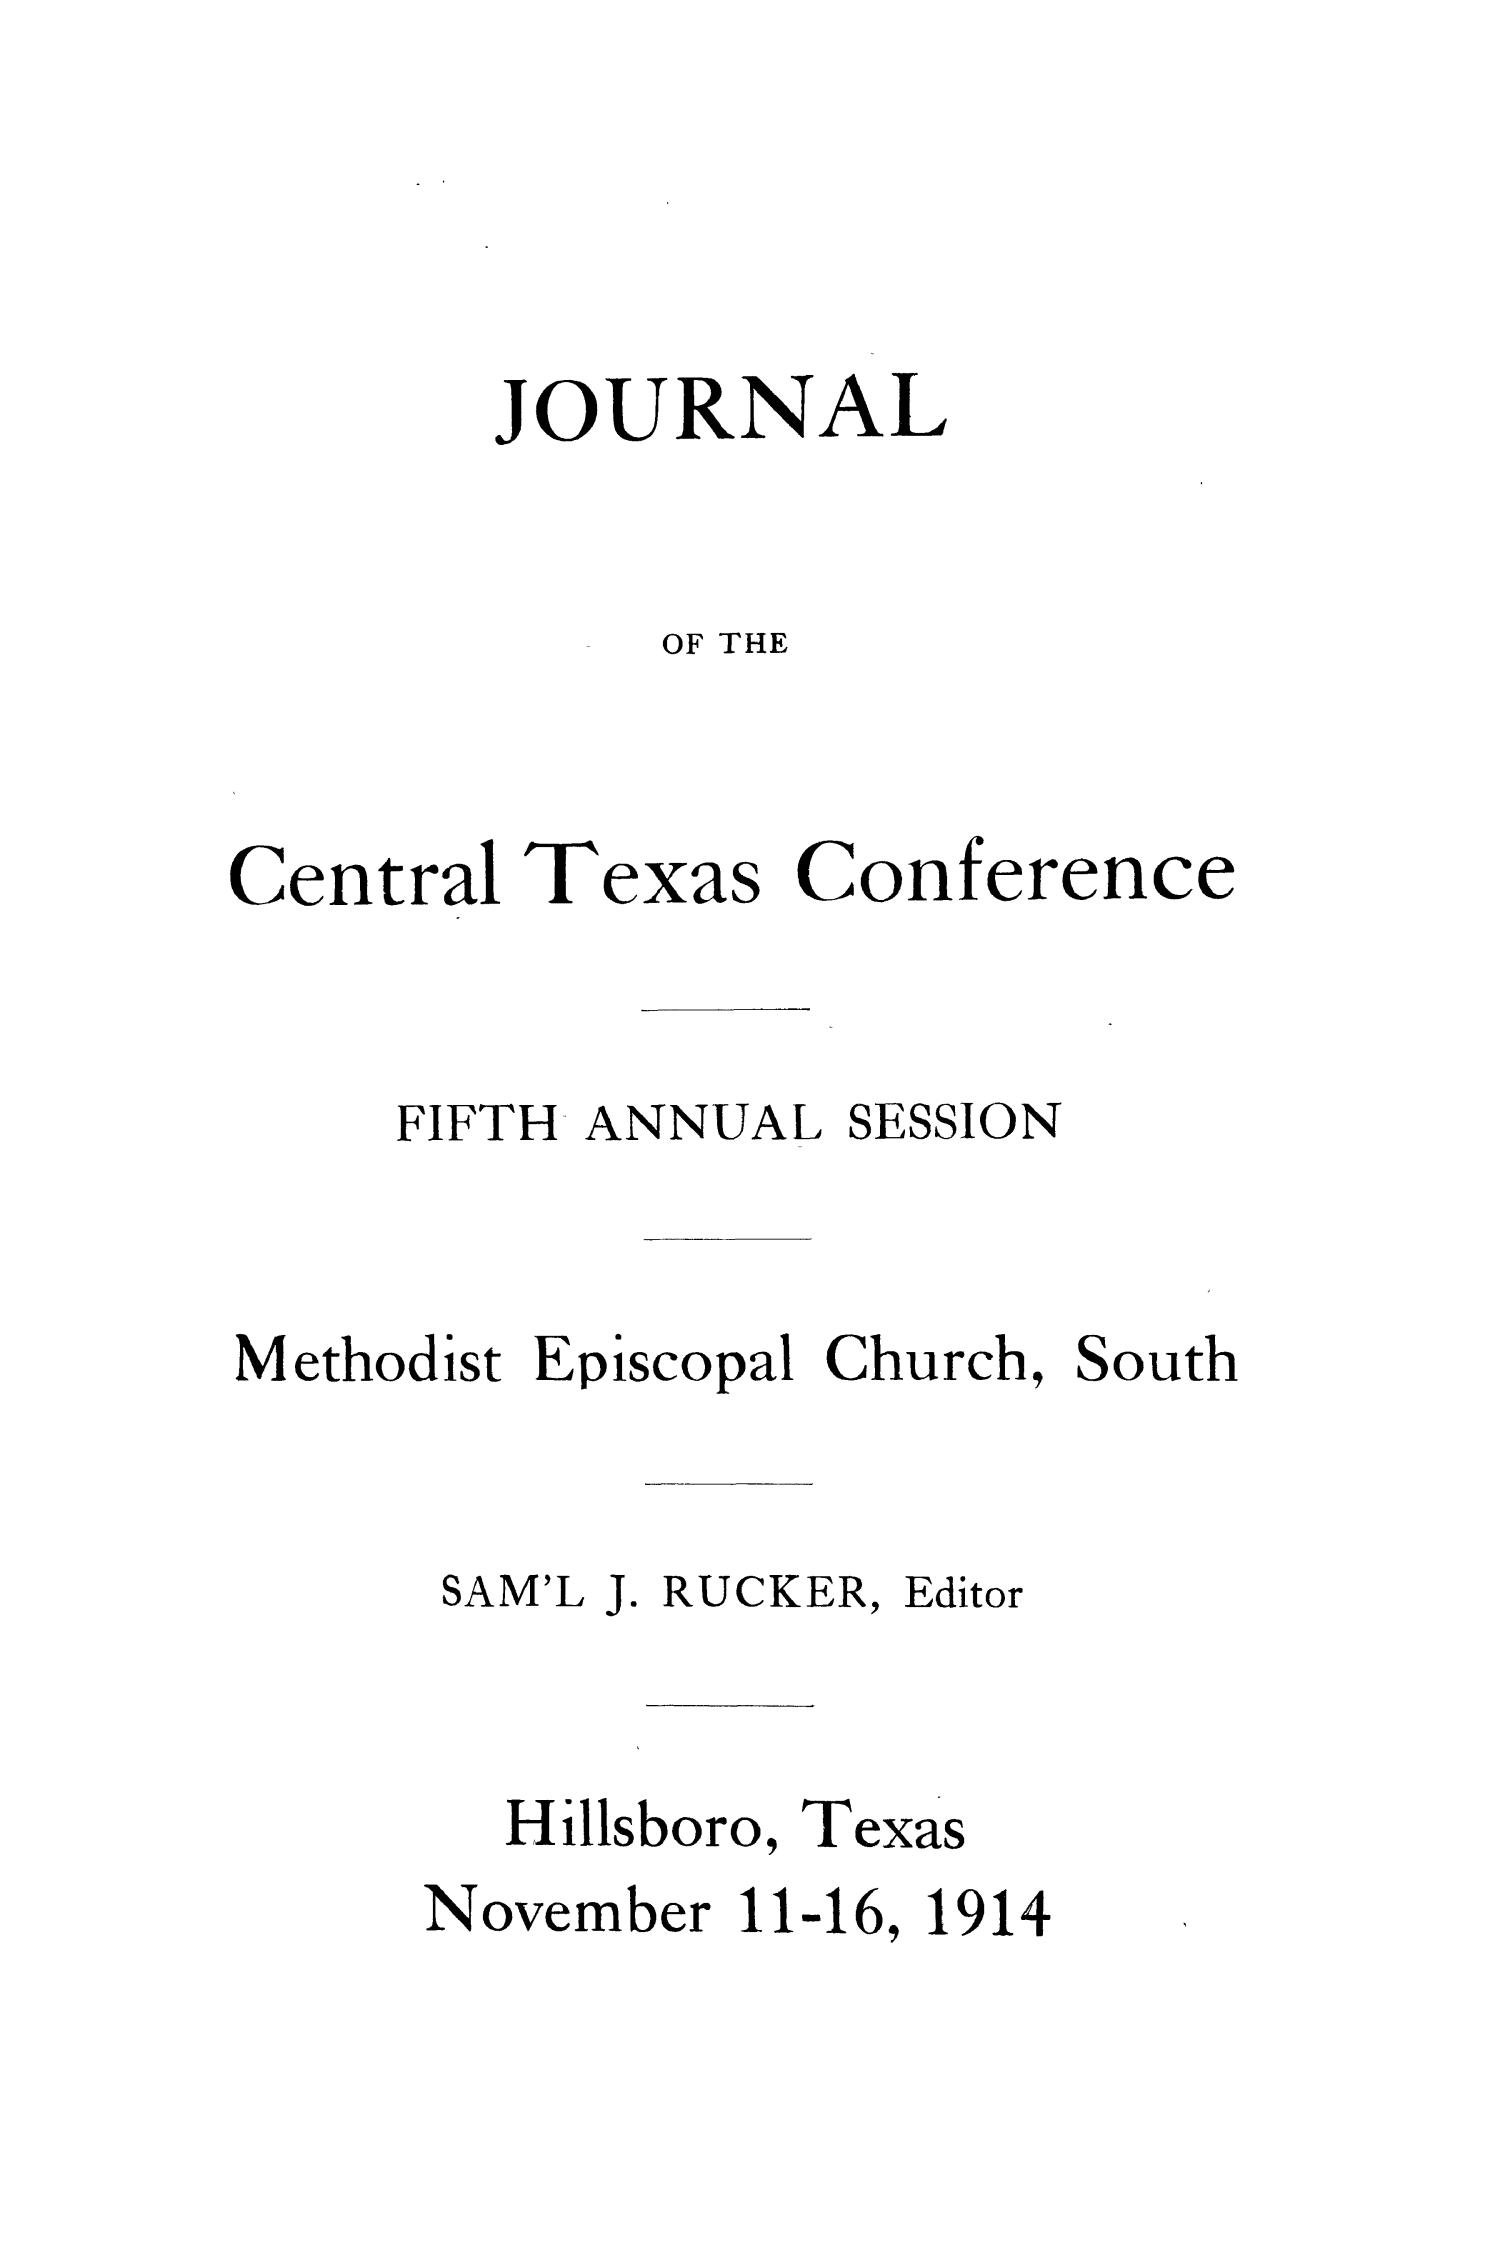 Journal of the Central Texas Conference, Fifth Annual Session, Methodist Episcopal Church, South                                                                                                      1